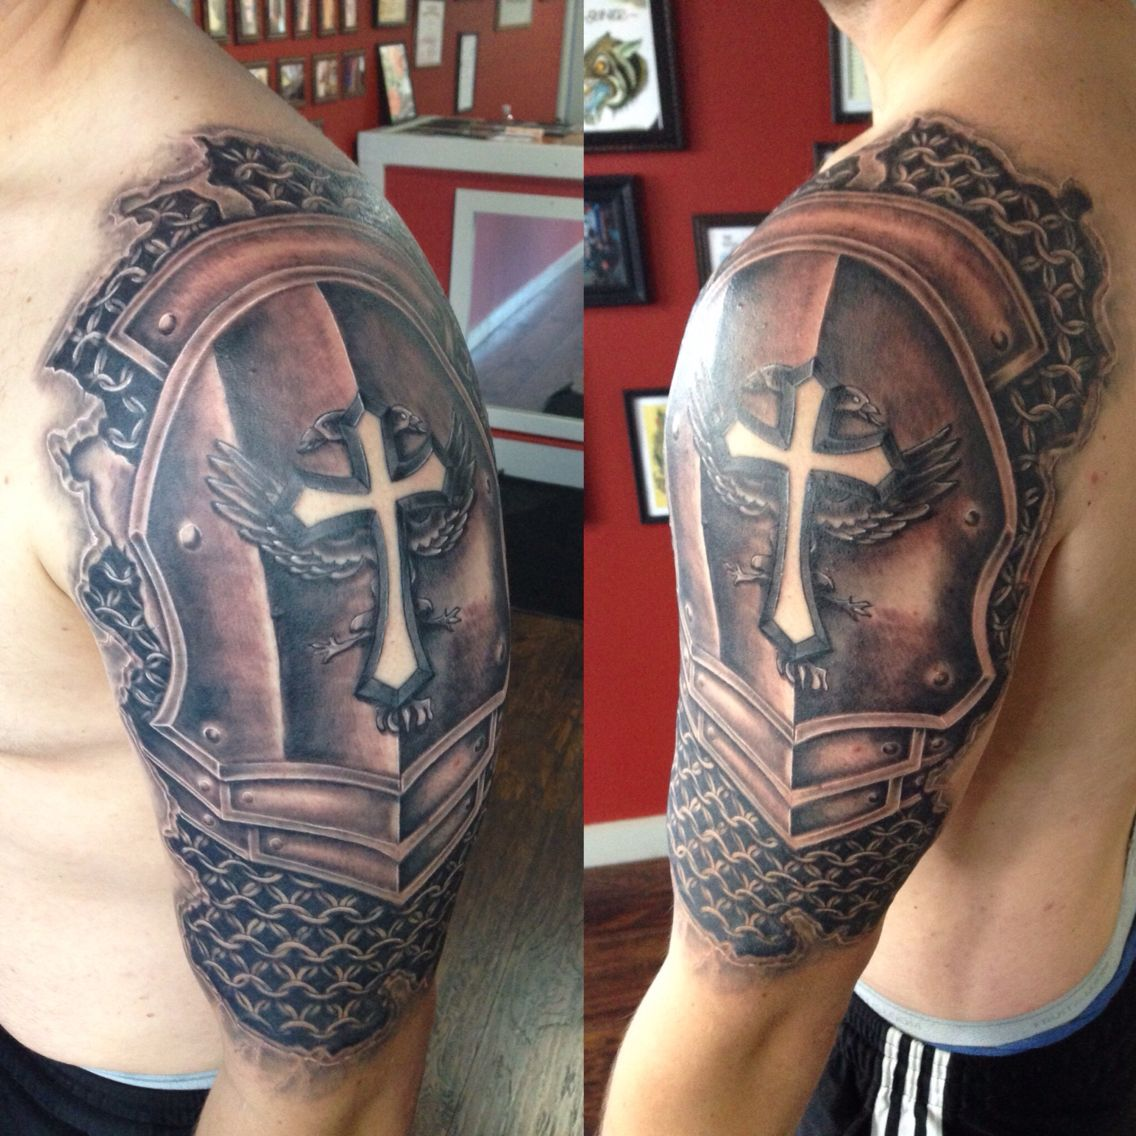 Armor sleeve coverup tattoo by joshua nordstrom in for Tattoo cover sleeves